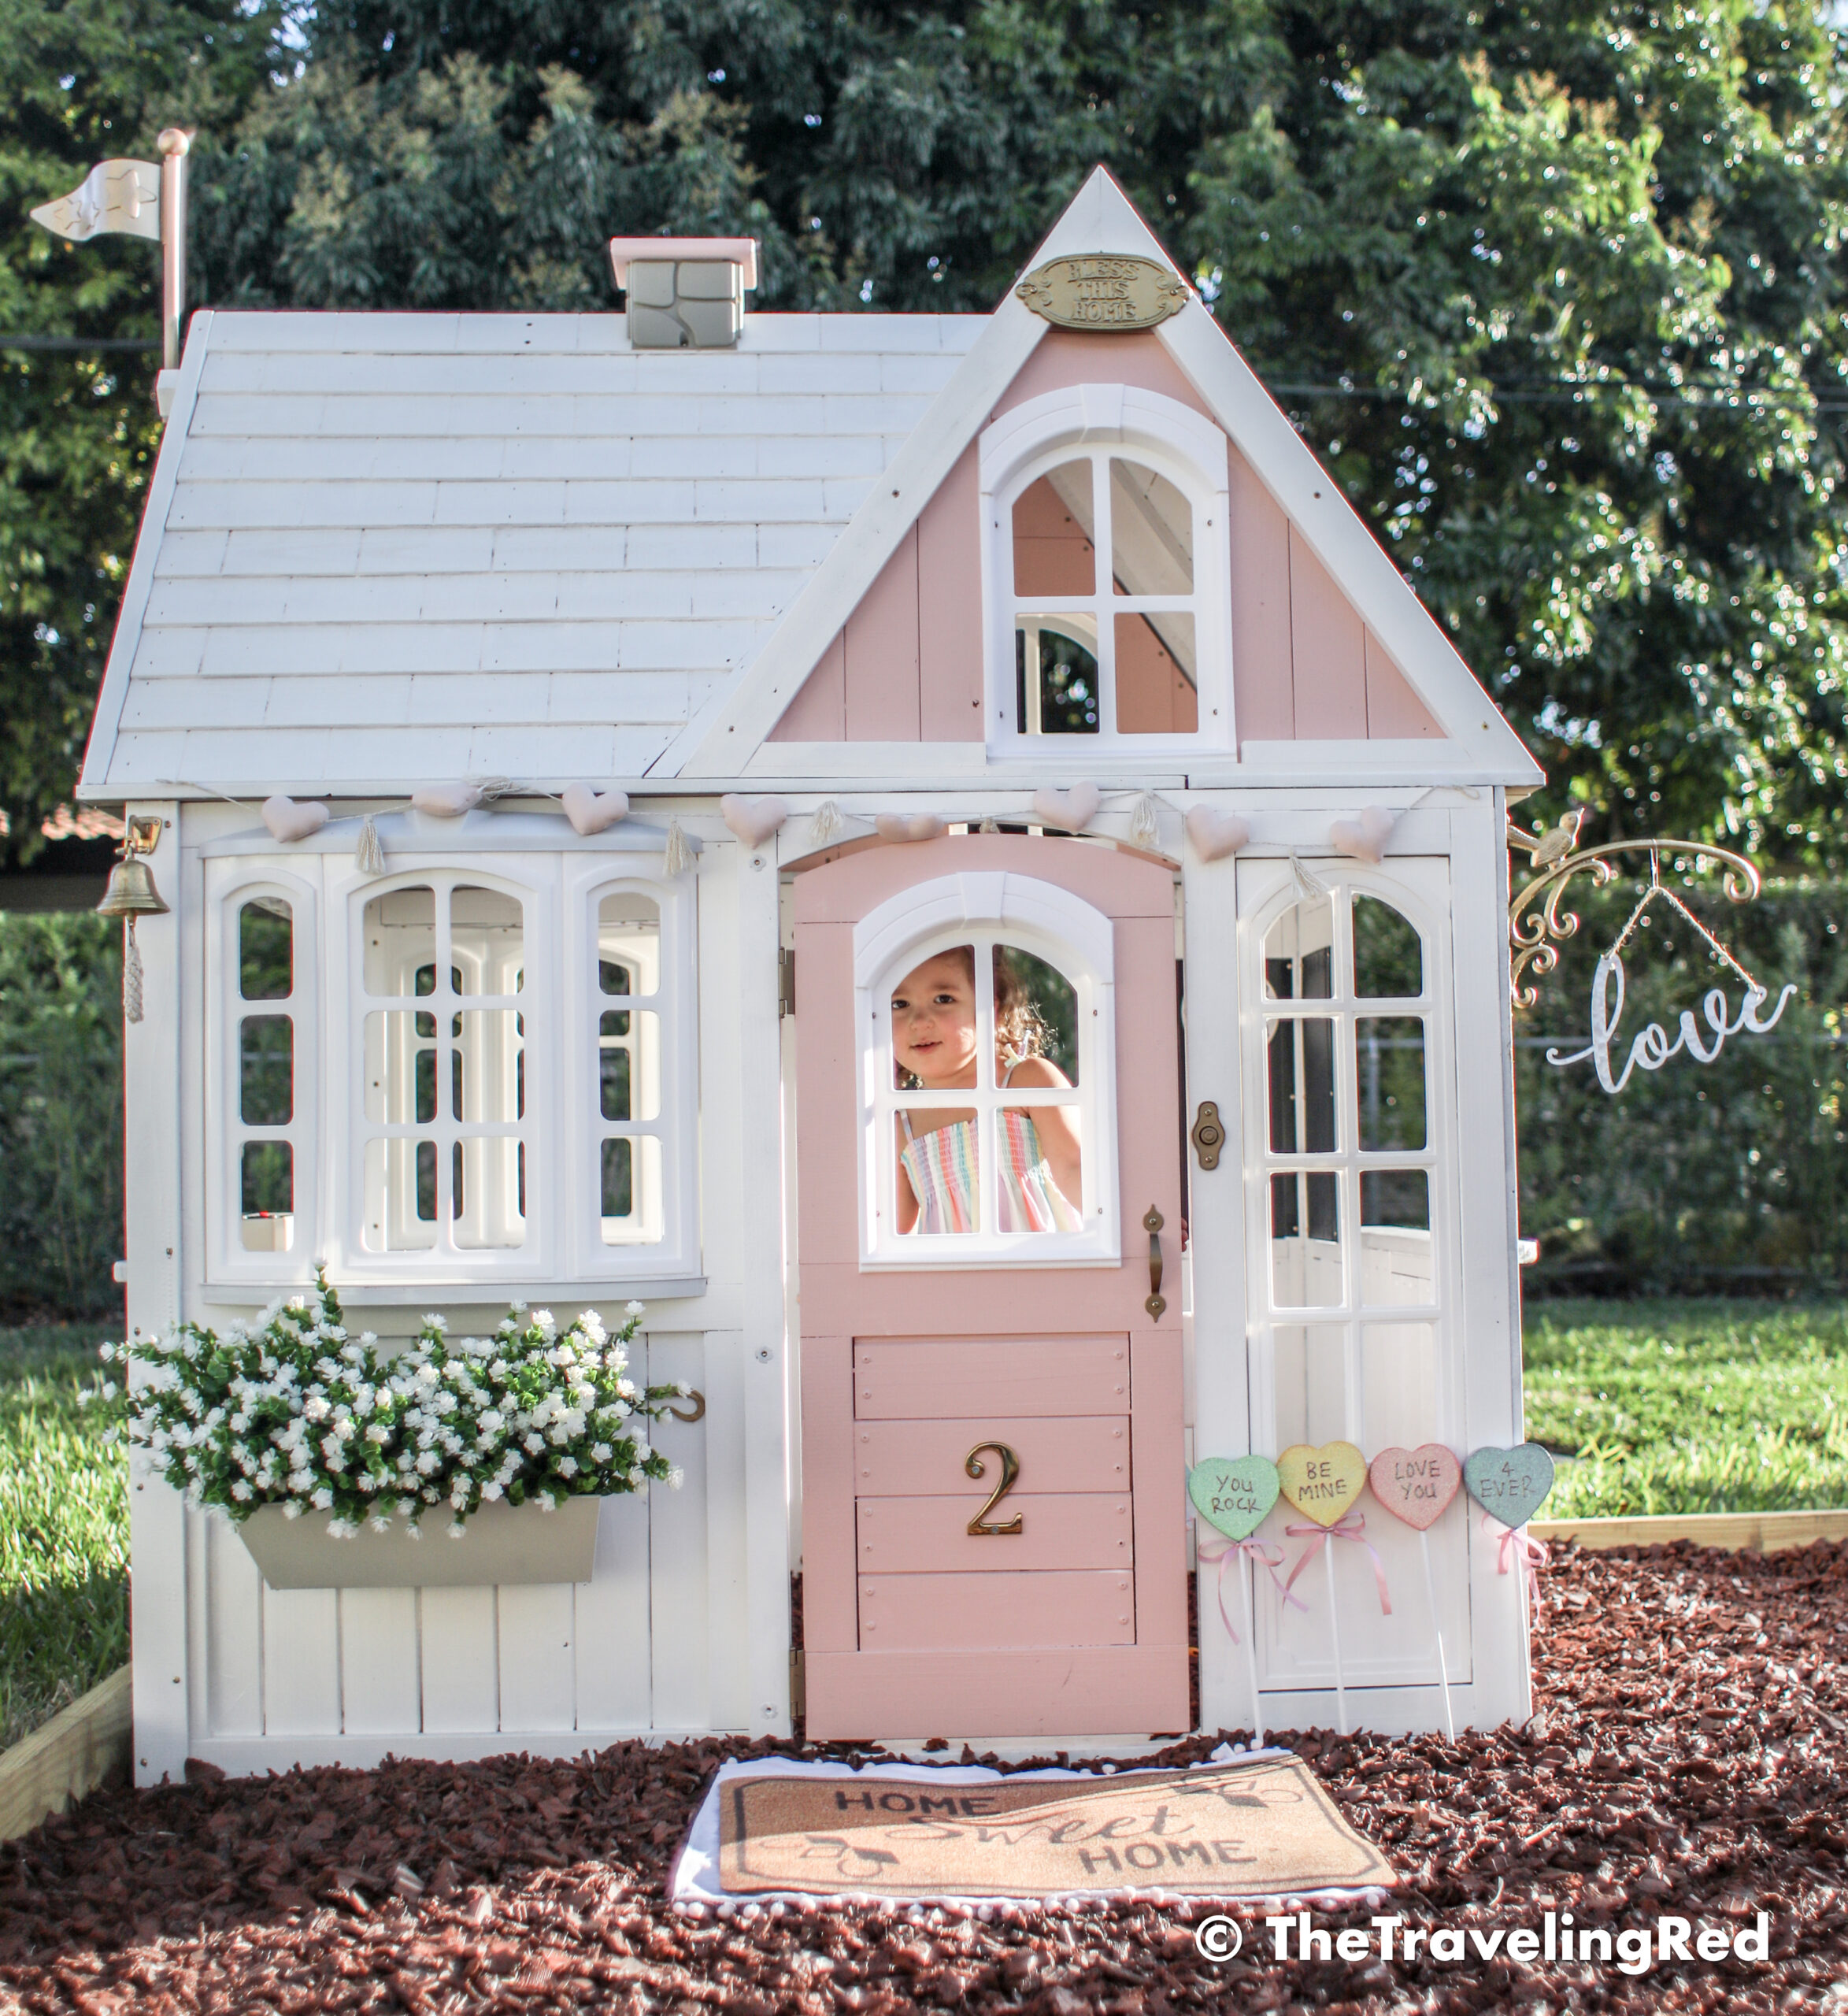 Valentine's Day Playhouse Decor - Kid's outdoor playhouse makeover decorated for Valentines Day using garland, candies and a little sign. Pink & white outdoor playhouse #valentinesday #valentinesdaydecor #homedecor #playhouse #playhousemakeover #valentinesdayhomedecor